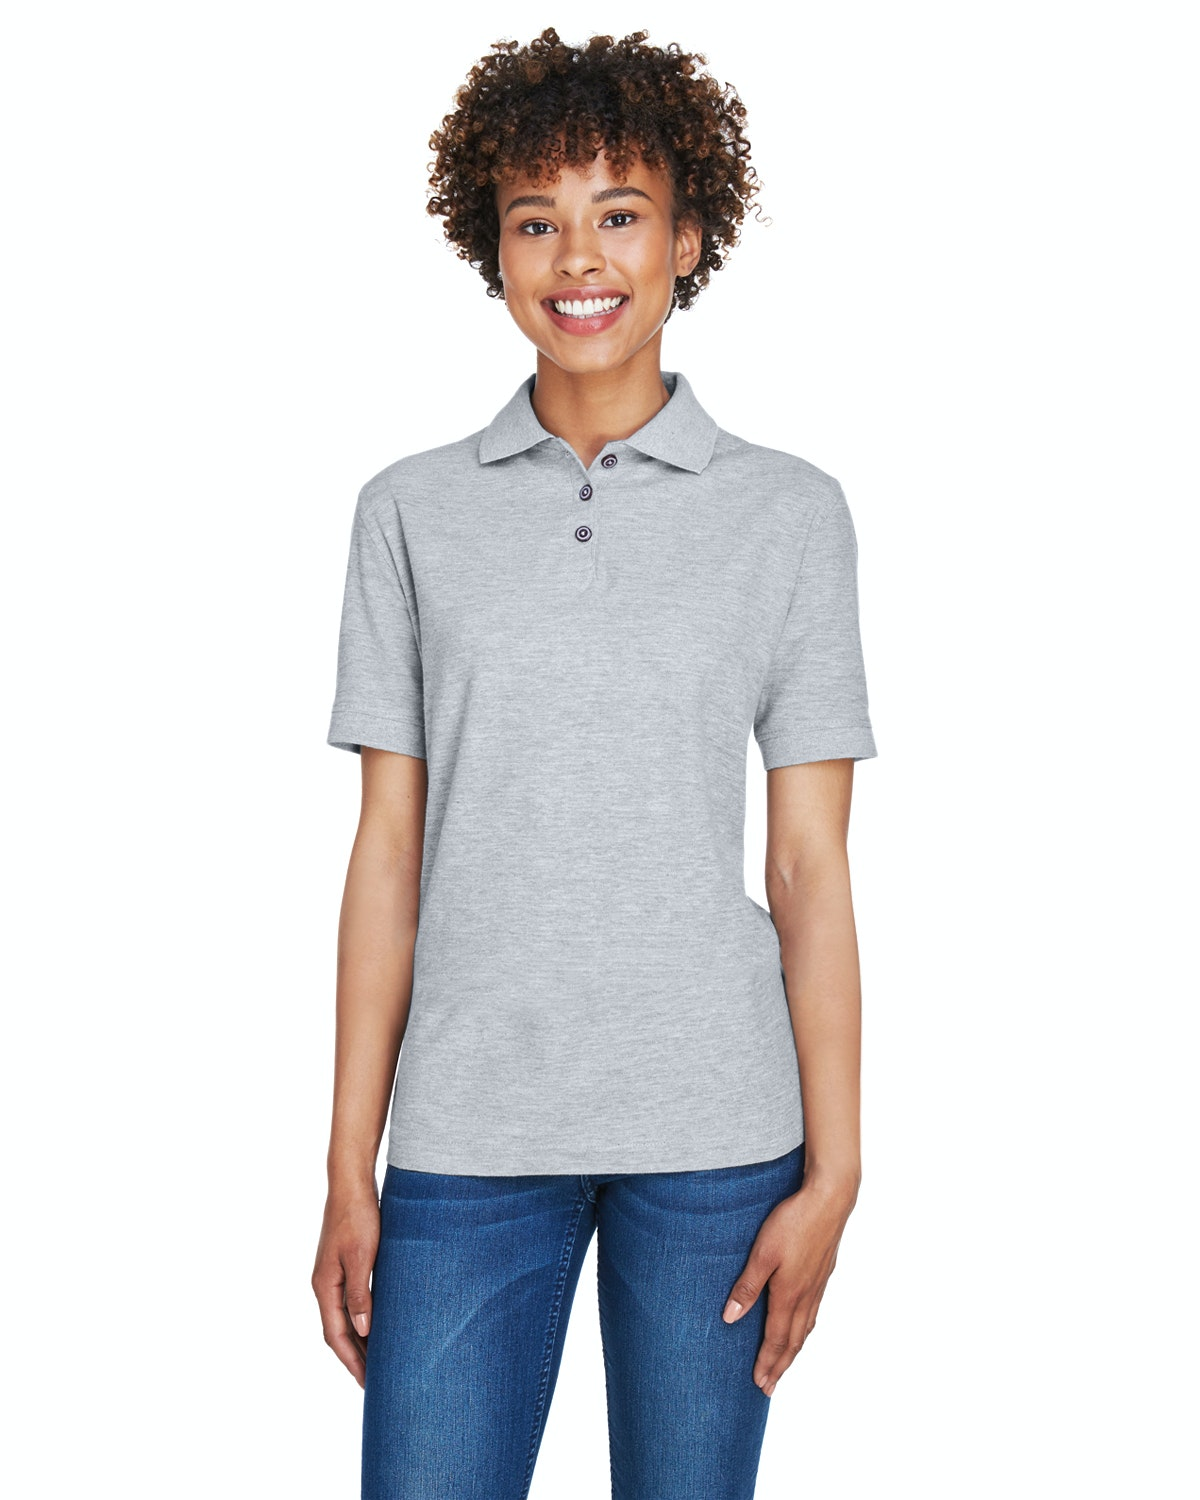 UltraClub 8541 Heather Grey